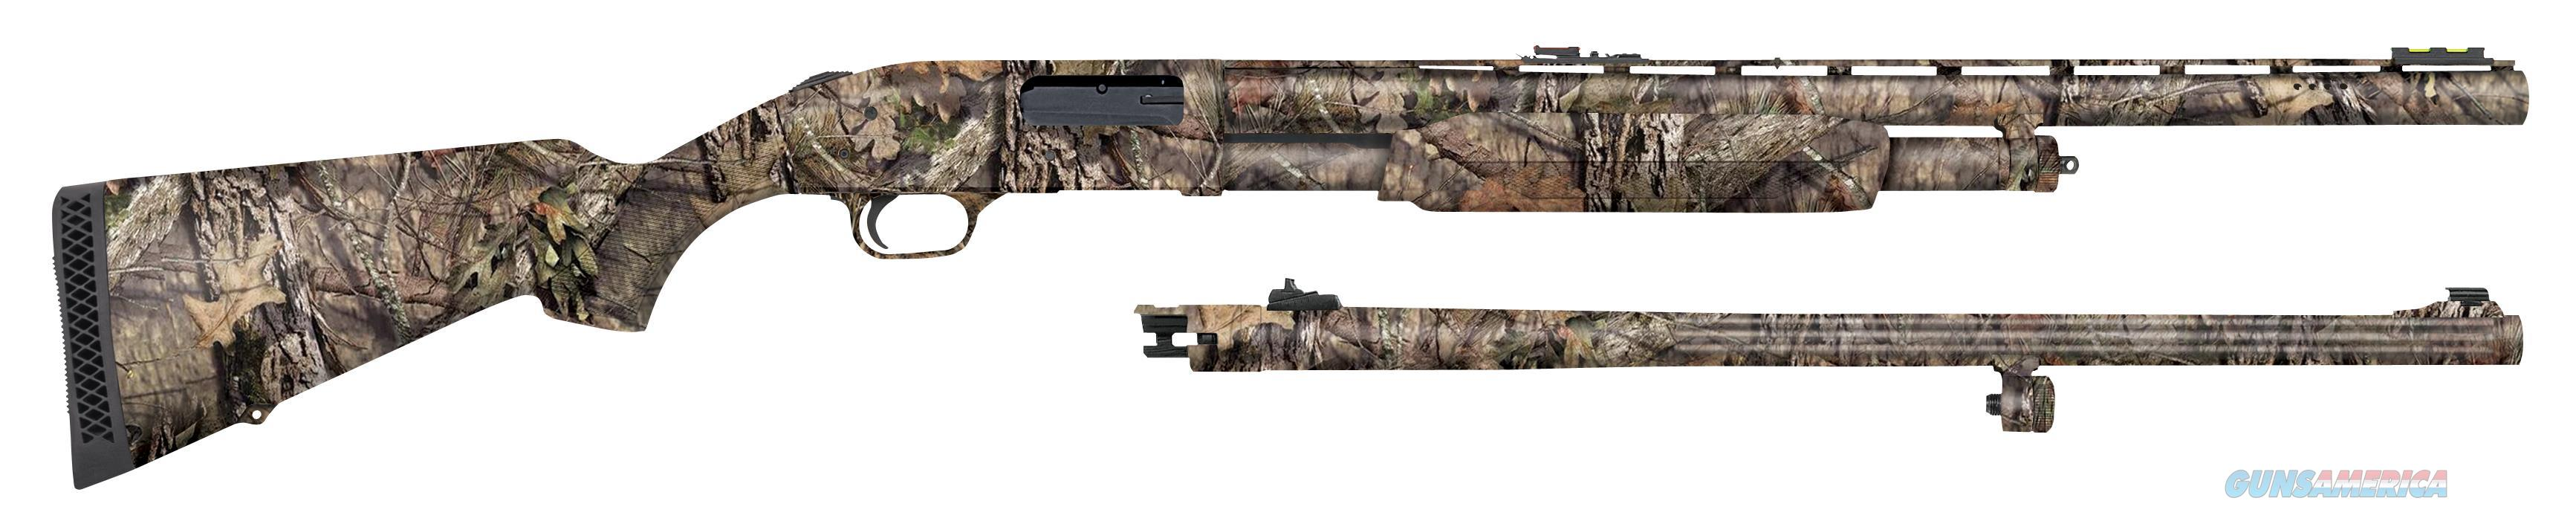 Mossberg 500 12Ga 24 Camo Turkey Deer Combo 53270  Guns > Rifles > MN Misc Rifles